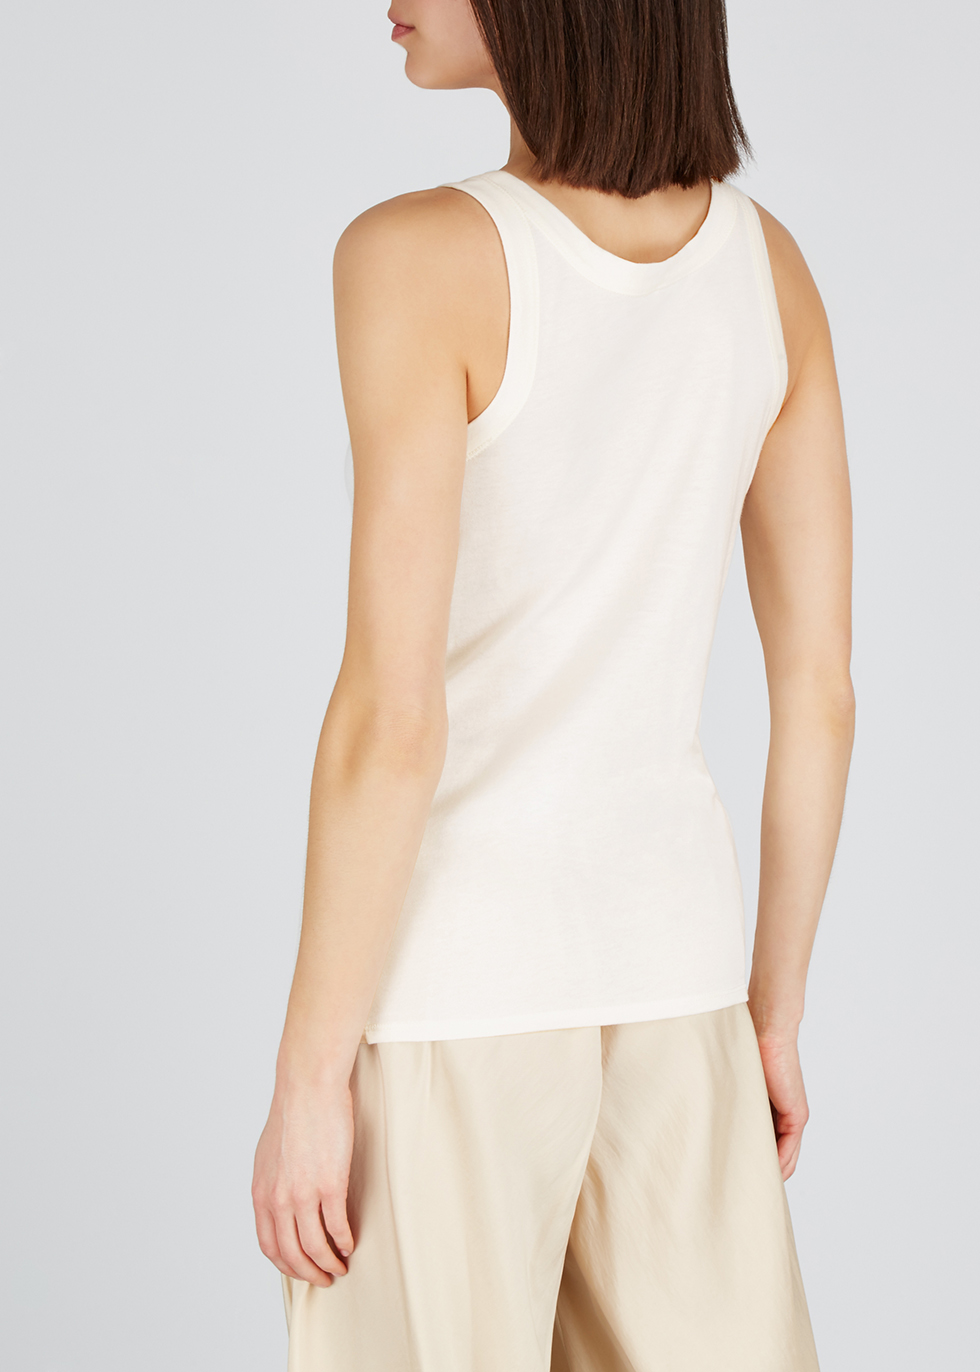 Frankie ivory cotton-blend tank - THE ROW